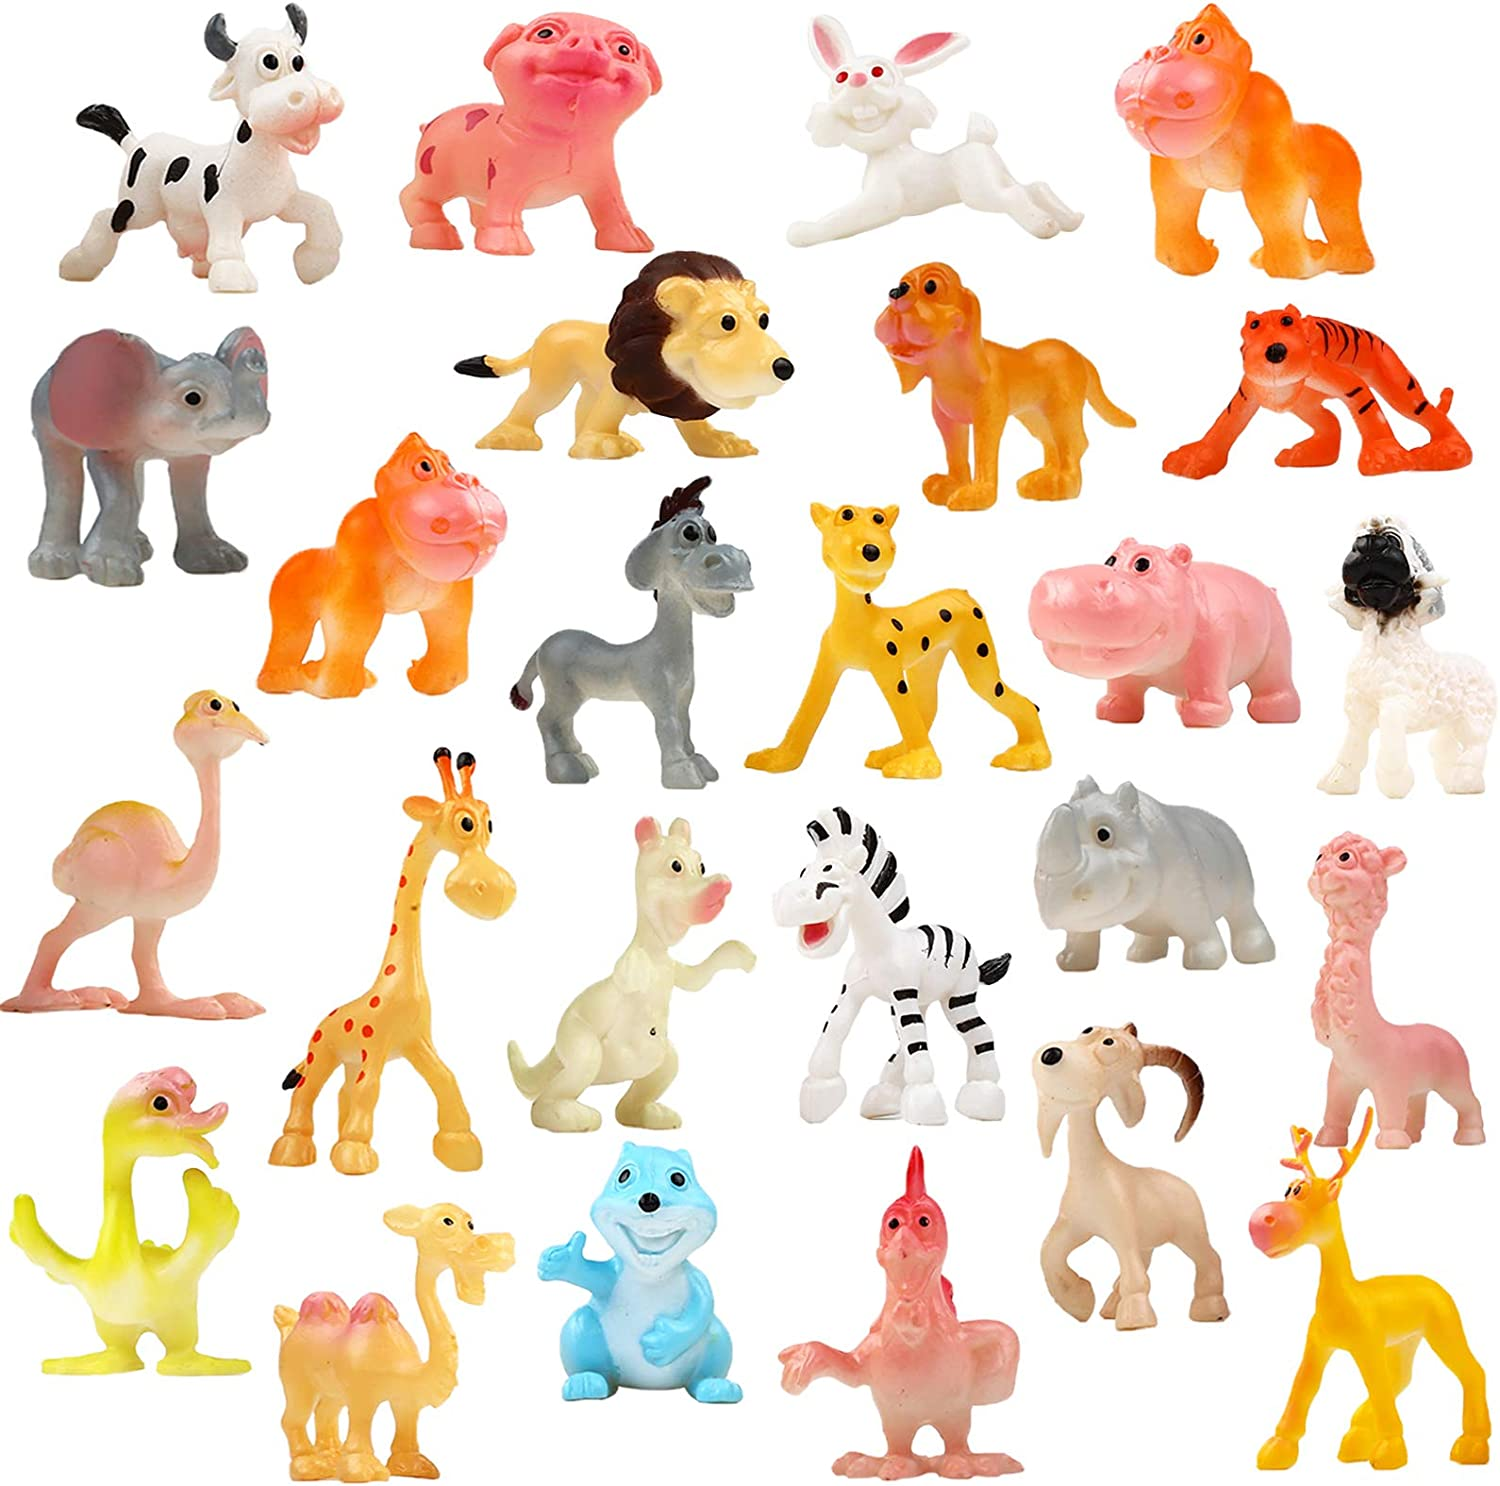 Amazon Com Funcorn Toys Cartoon Animal 24 Pack Mini Plastic Wild Animals Models Toys Kit Jungle Animal Figures Set For Children Boys Girls Kids Party Favors Classrooms Rewards Birthday Gift Educational Toy